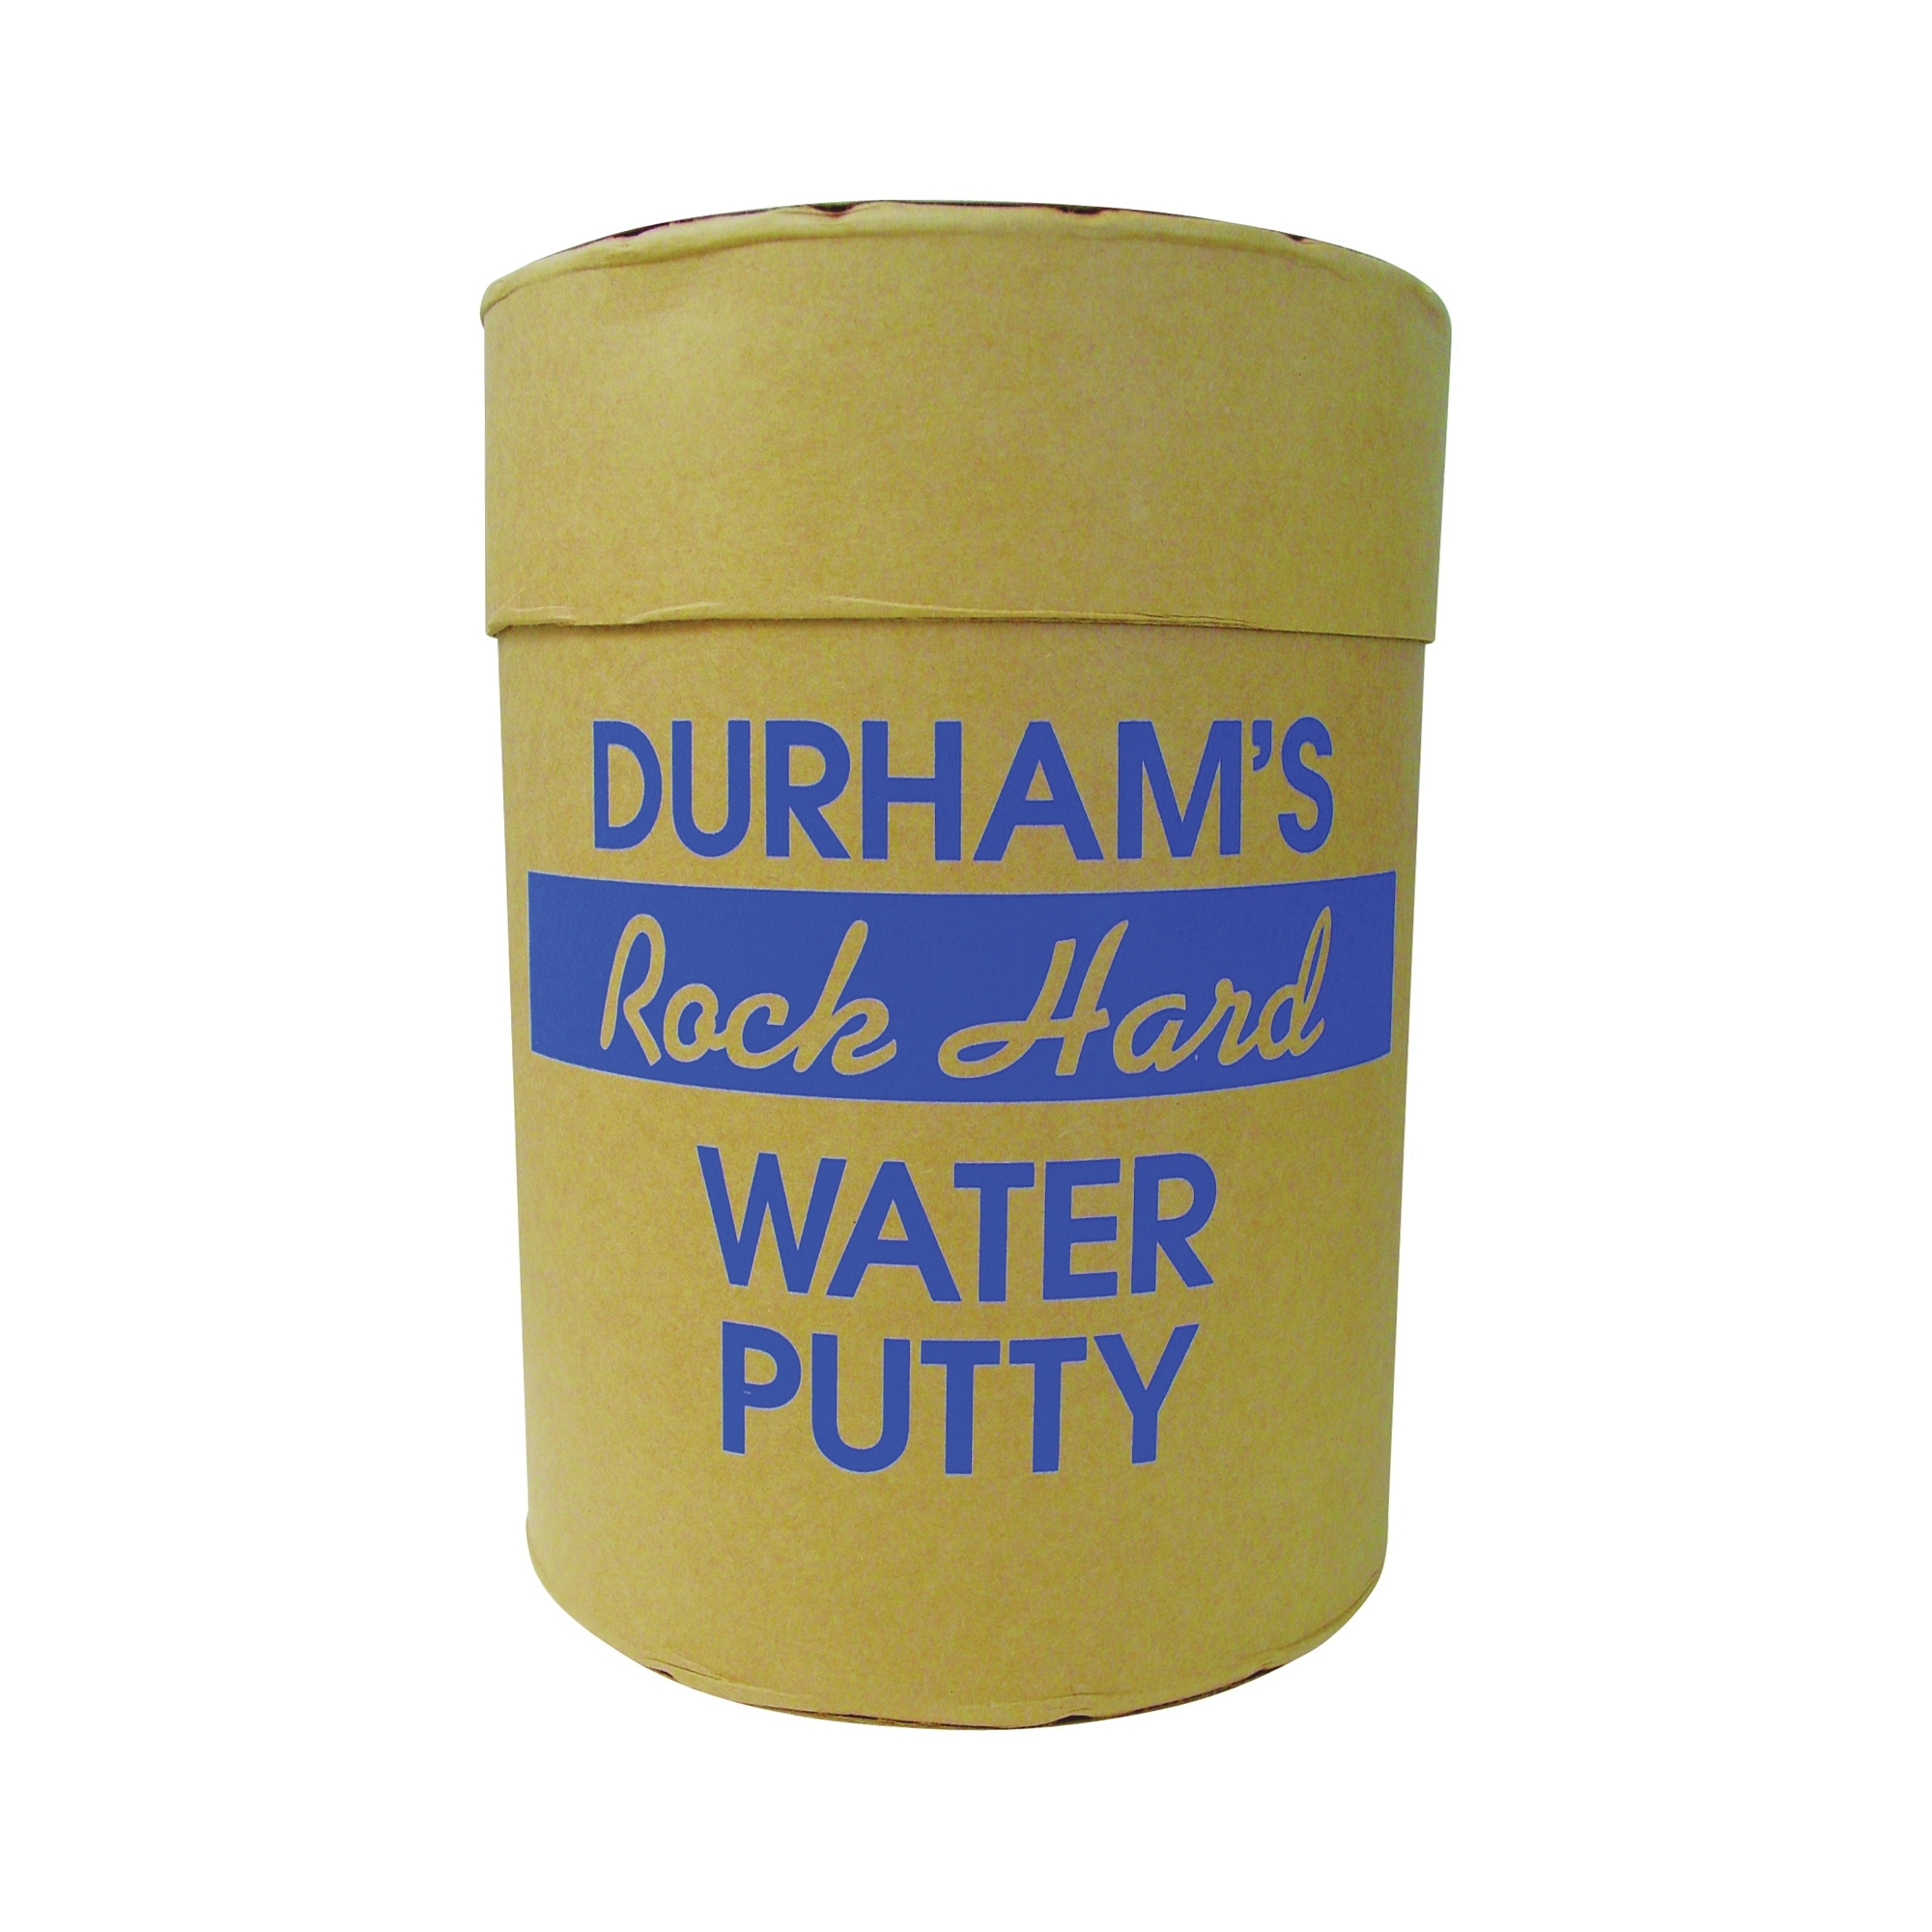 Picture of DURHAM'S Rock Hard 25 Water Putty, Natural Cream, 25 lb Package, Can